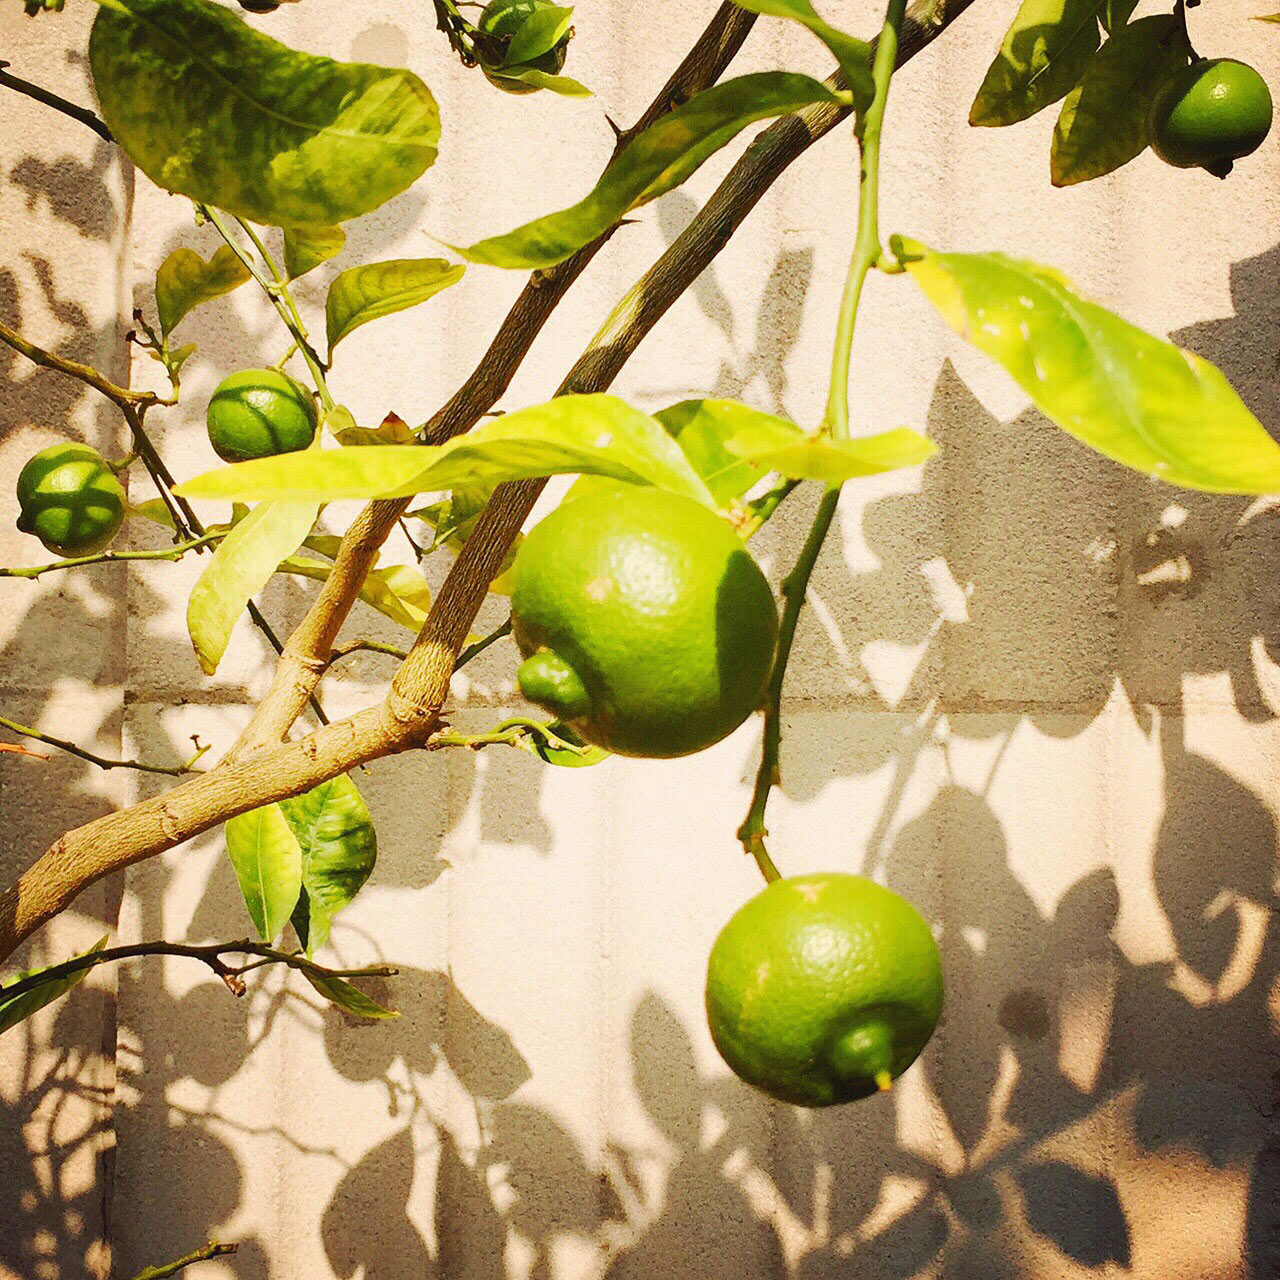 Image of Limes | Tosca Radigonda Photography